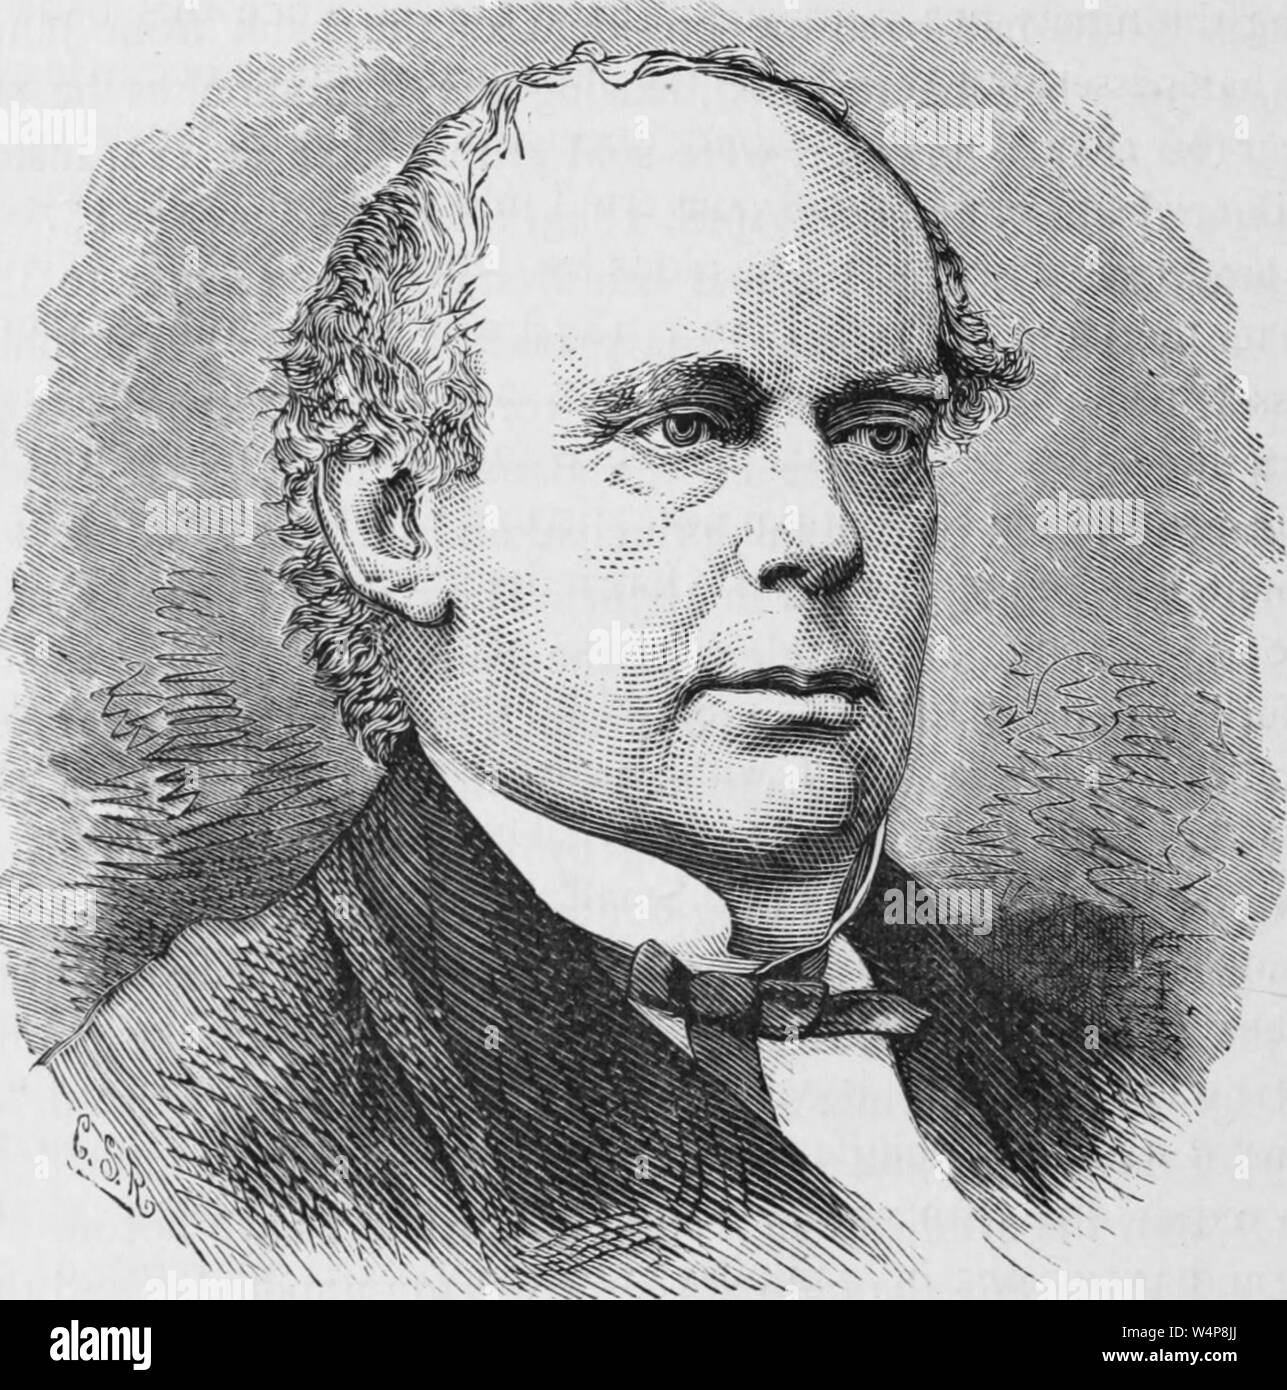 Engraved portrait of Salmon Portland Chase, Chief Justice of the United States, an American politician and jurist from Cornish, New Hampshire, from the book 'Industrial history of the United States' by Albert Sidney Bolles, 1878. Courtesy Internet Archive. () Stock Photo